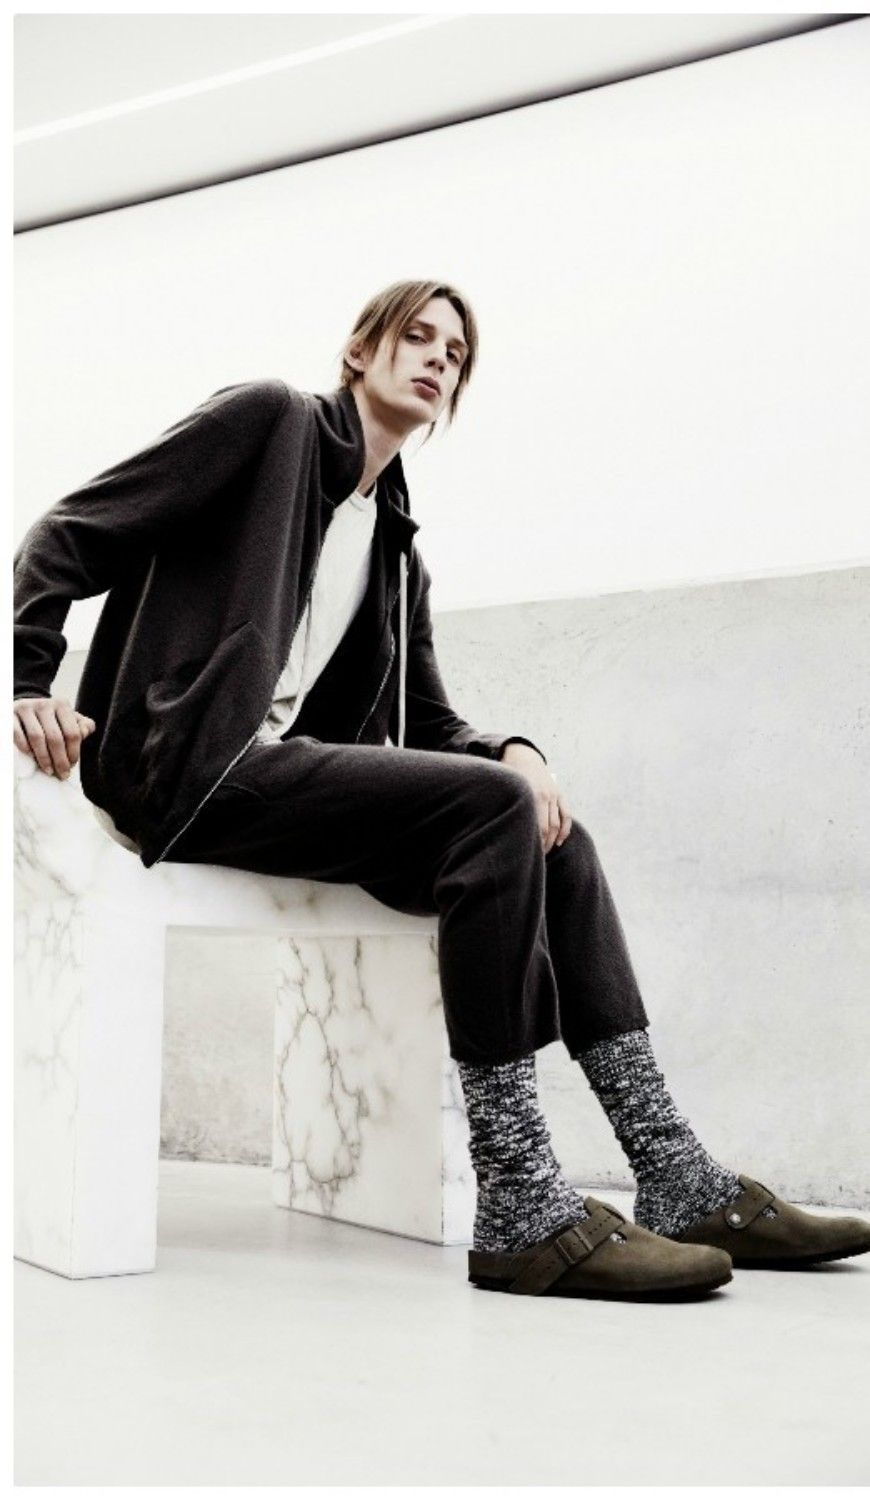 17e8e73a26d5 Rick Owens And Birkenstock s Capsule Now Available For Pre-Order ...